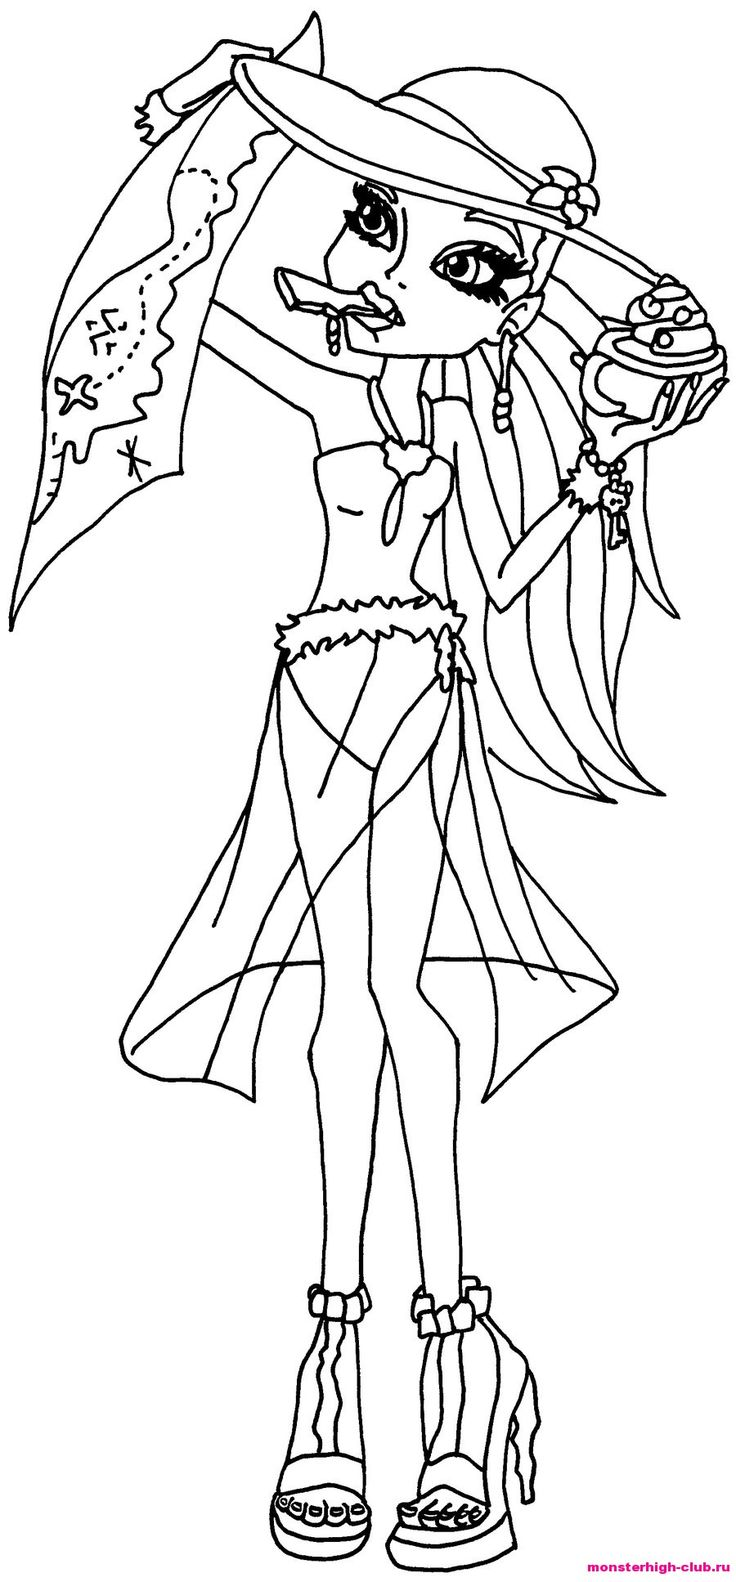 15 best monster high love images on pinterest drawing, beautiful Princess Coloring Pages Monster High Dolls Coloring Printables Abby Monster High Boys Coloring Pages